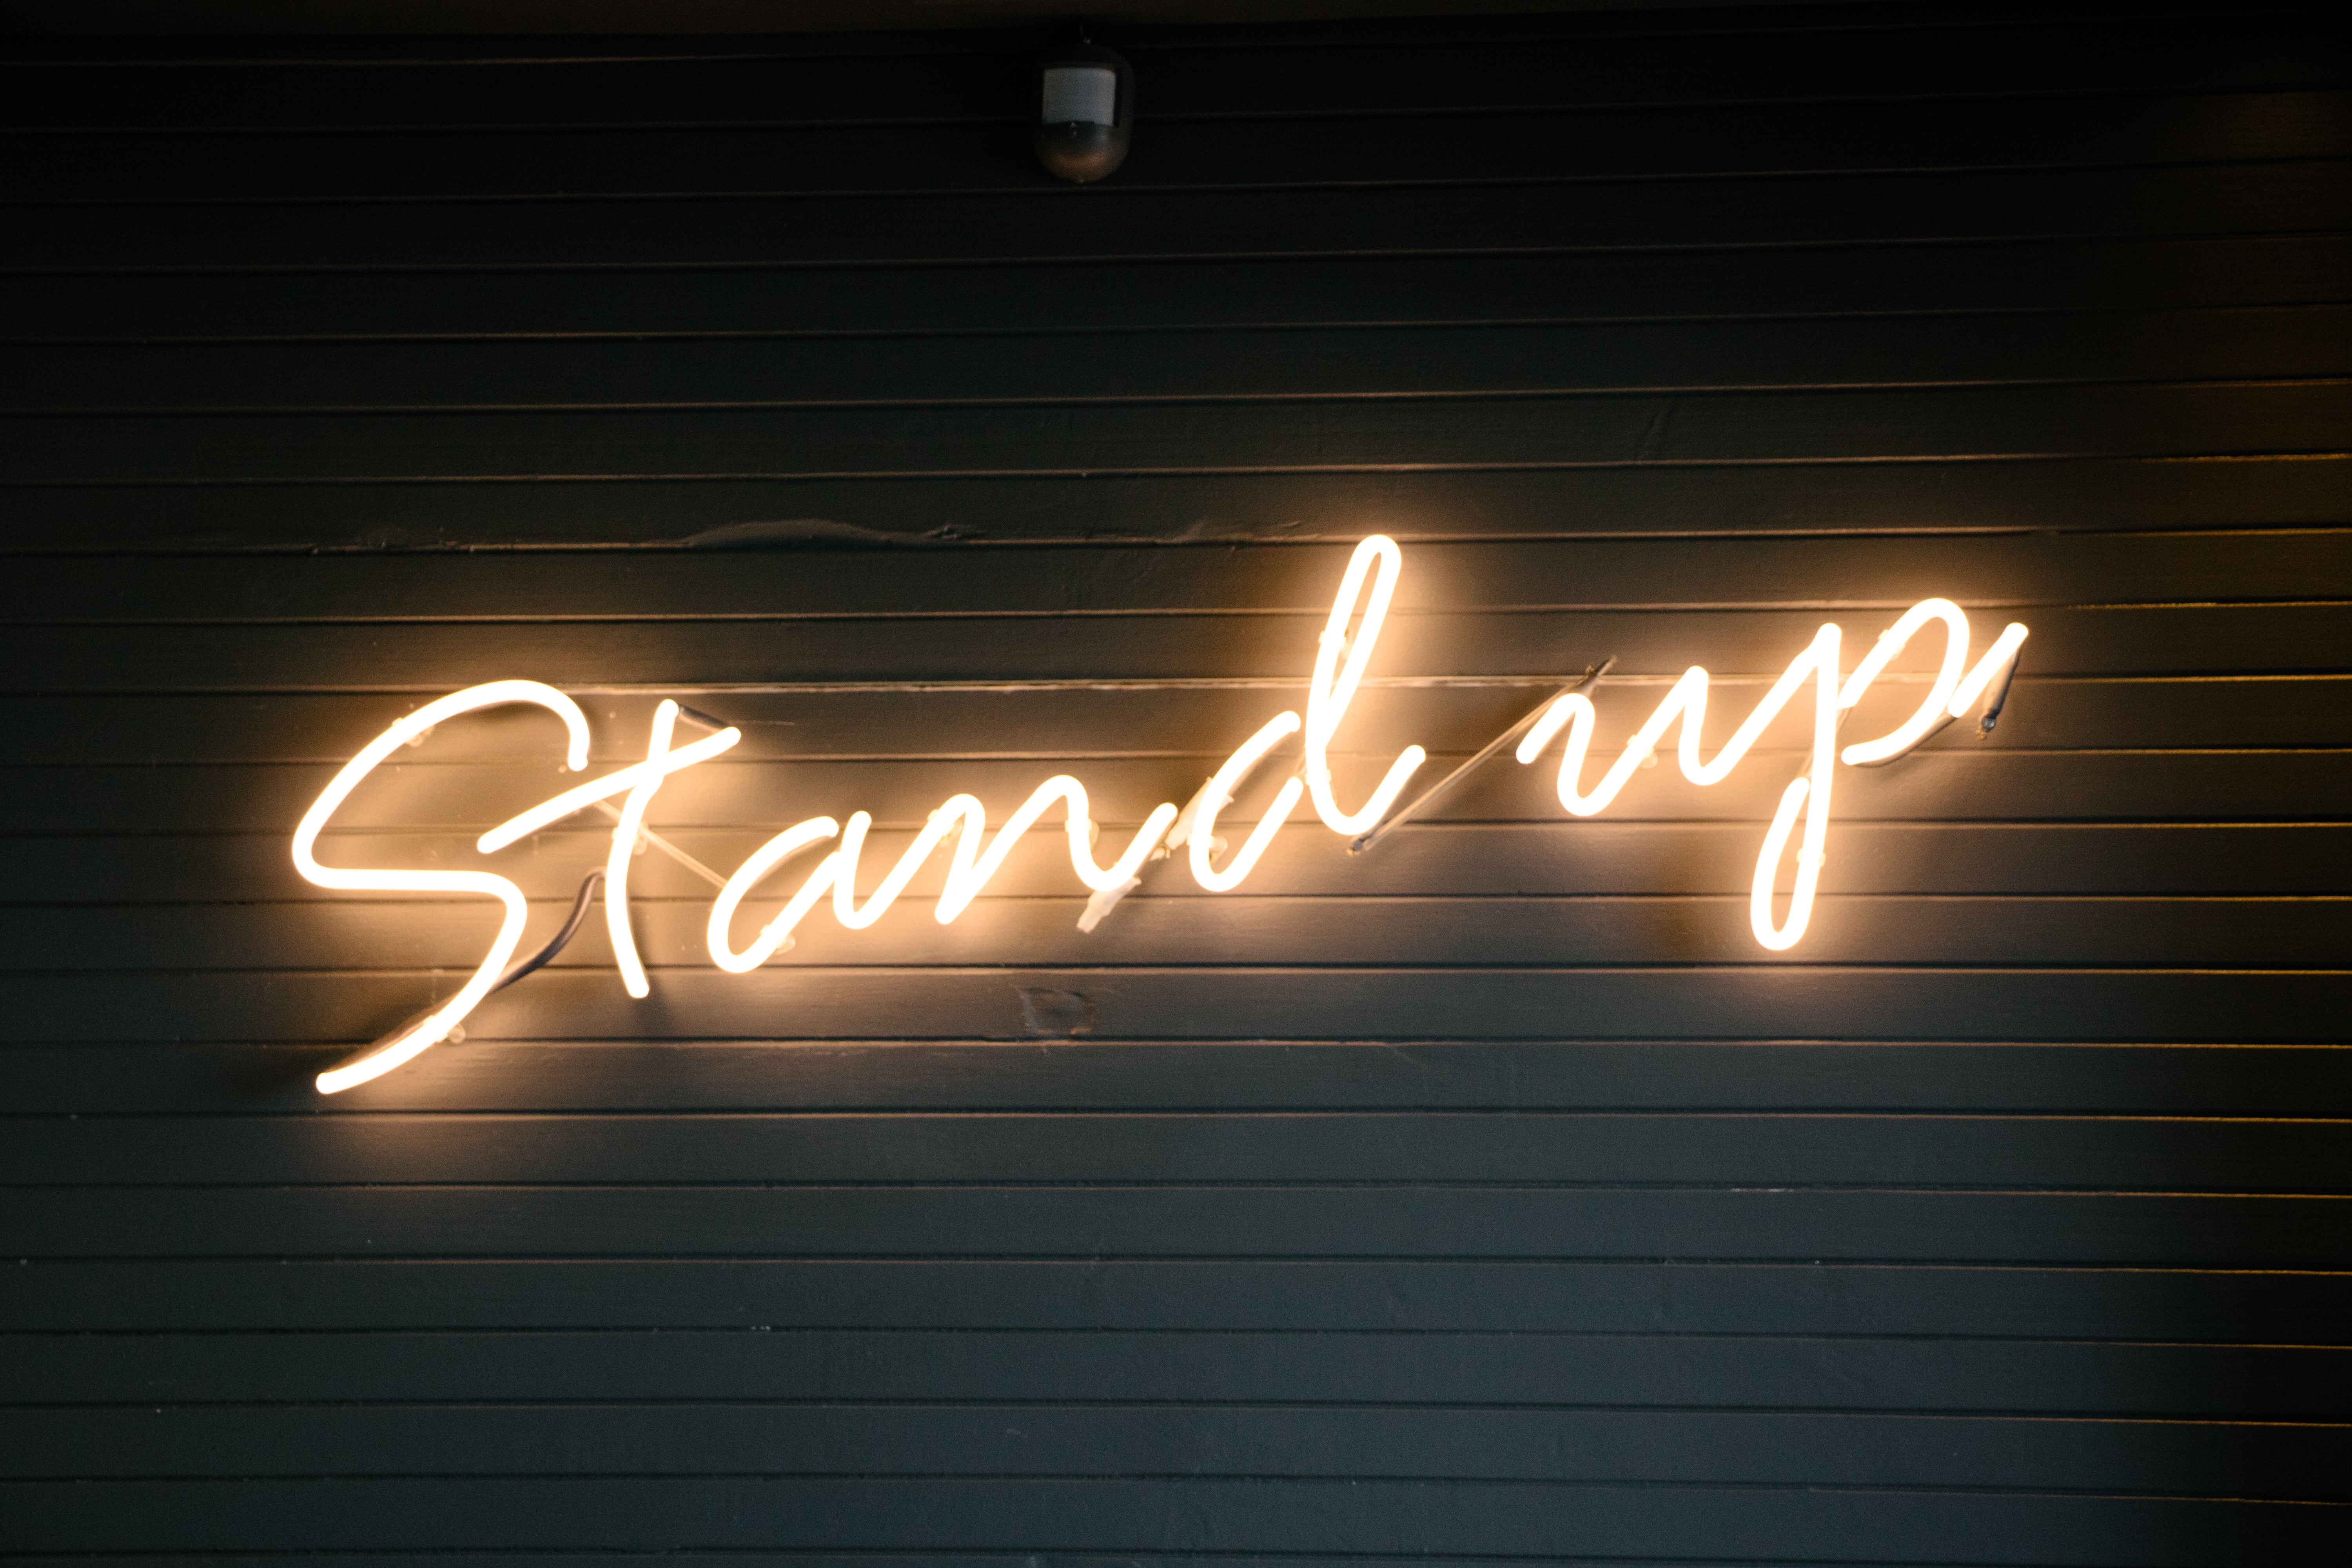 When are you going to be an upstander